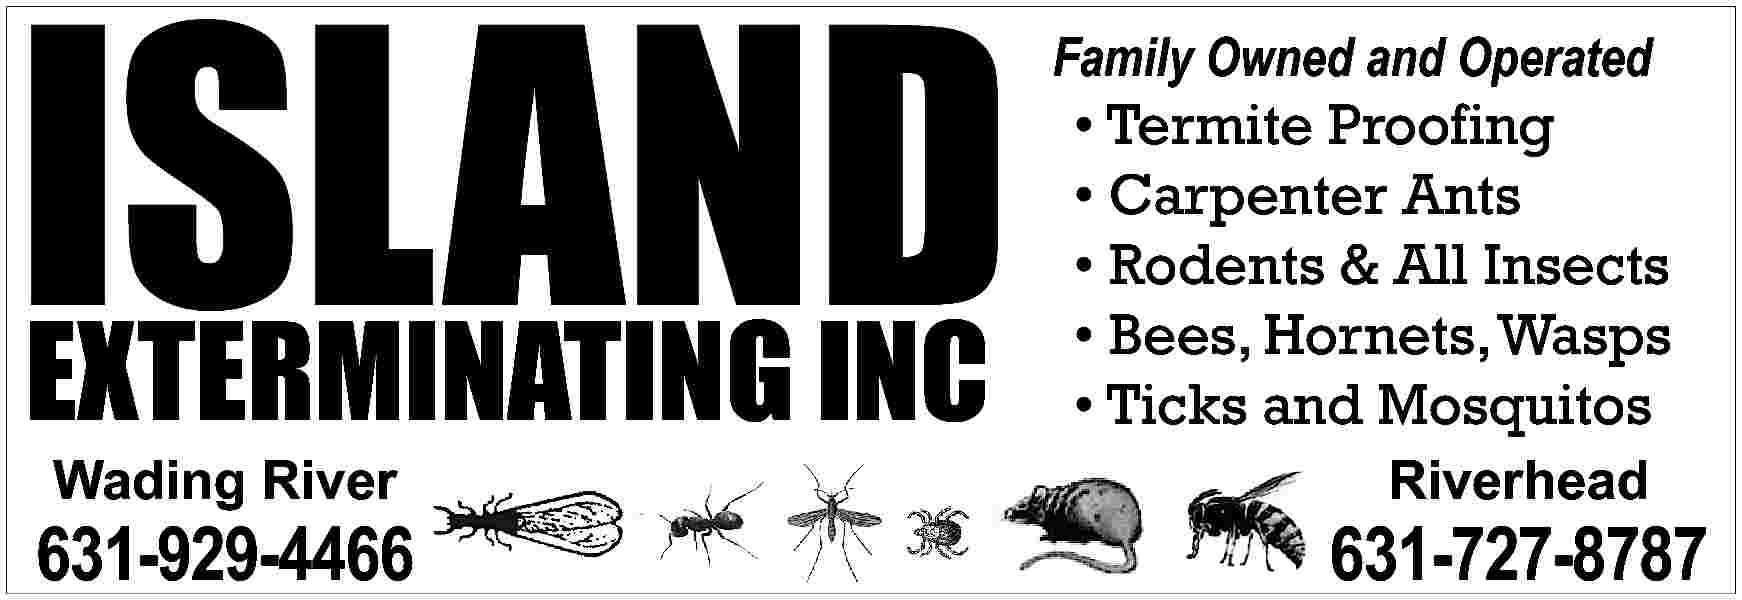 ISLAND EXTERMINATING INC Family ISLAND EXTERMINATING INC  Family Owned and Operated      Termite Proofing     Carpenter Ants     Rodents & All Insects     Bees, Hornets, Wasps     Ticks and Mosquitos  Wading River  Riverhead  631-929-4466  631-727-8787